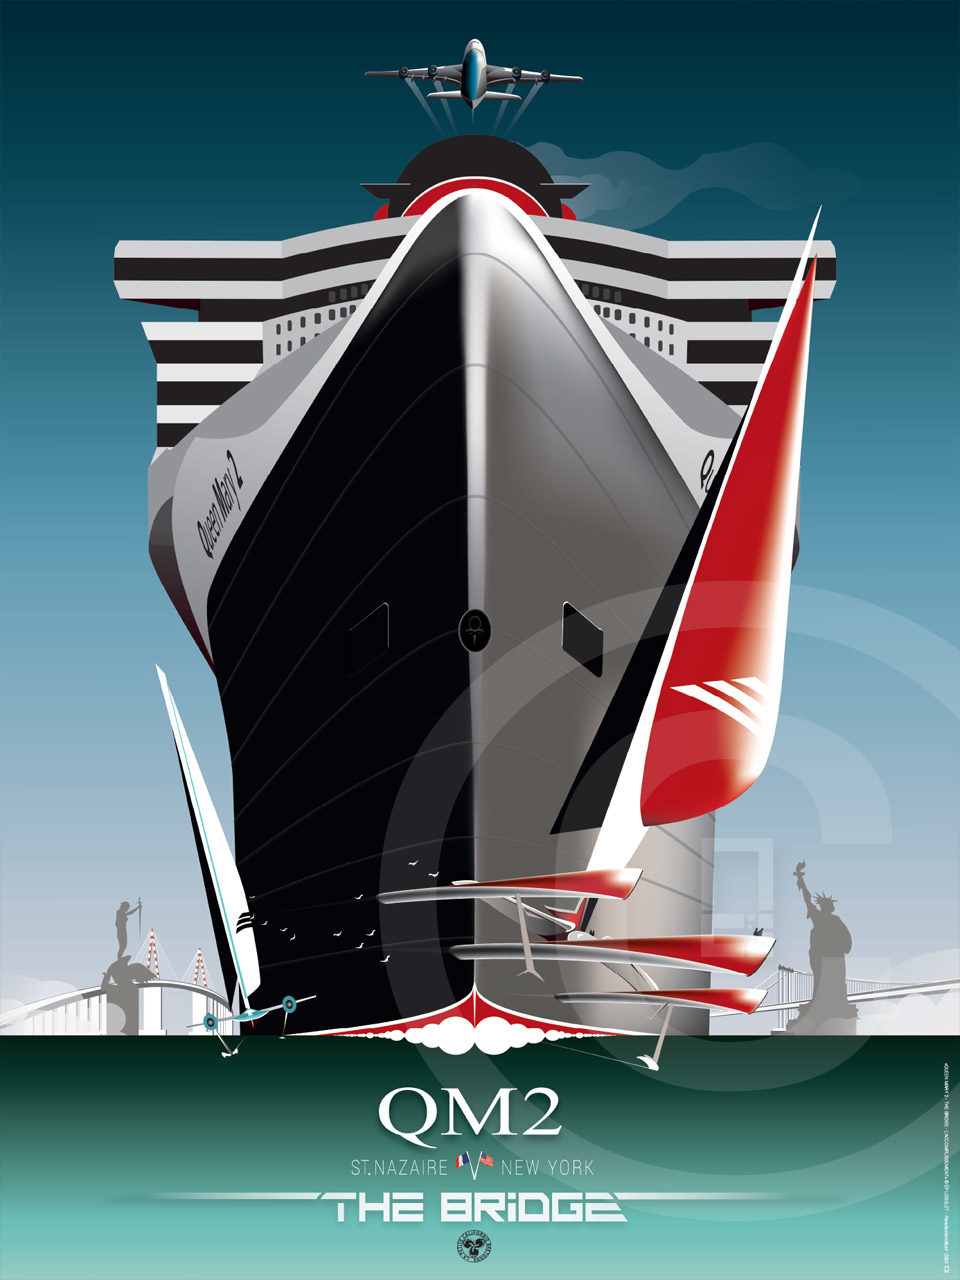 Affiche Queen Mary 2 Paquebots Saint-Nazaire The Bridge